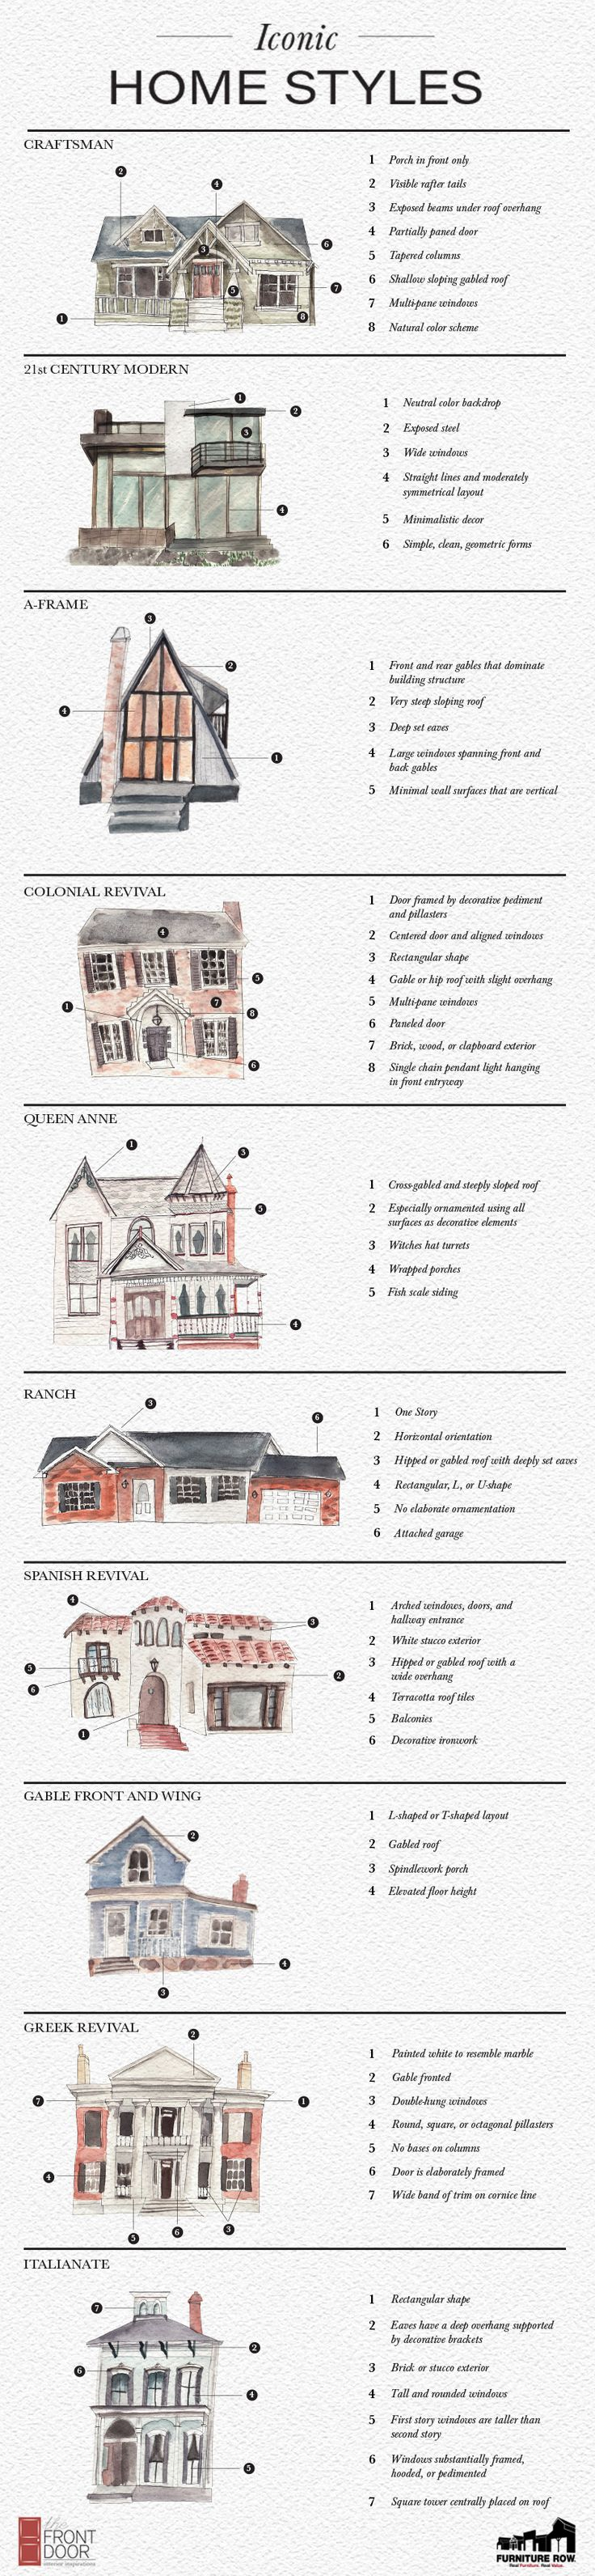 Iconic Home Styles Infographic: 10 Types of Houses